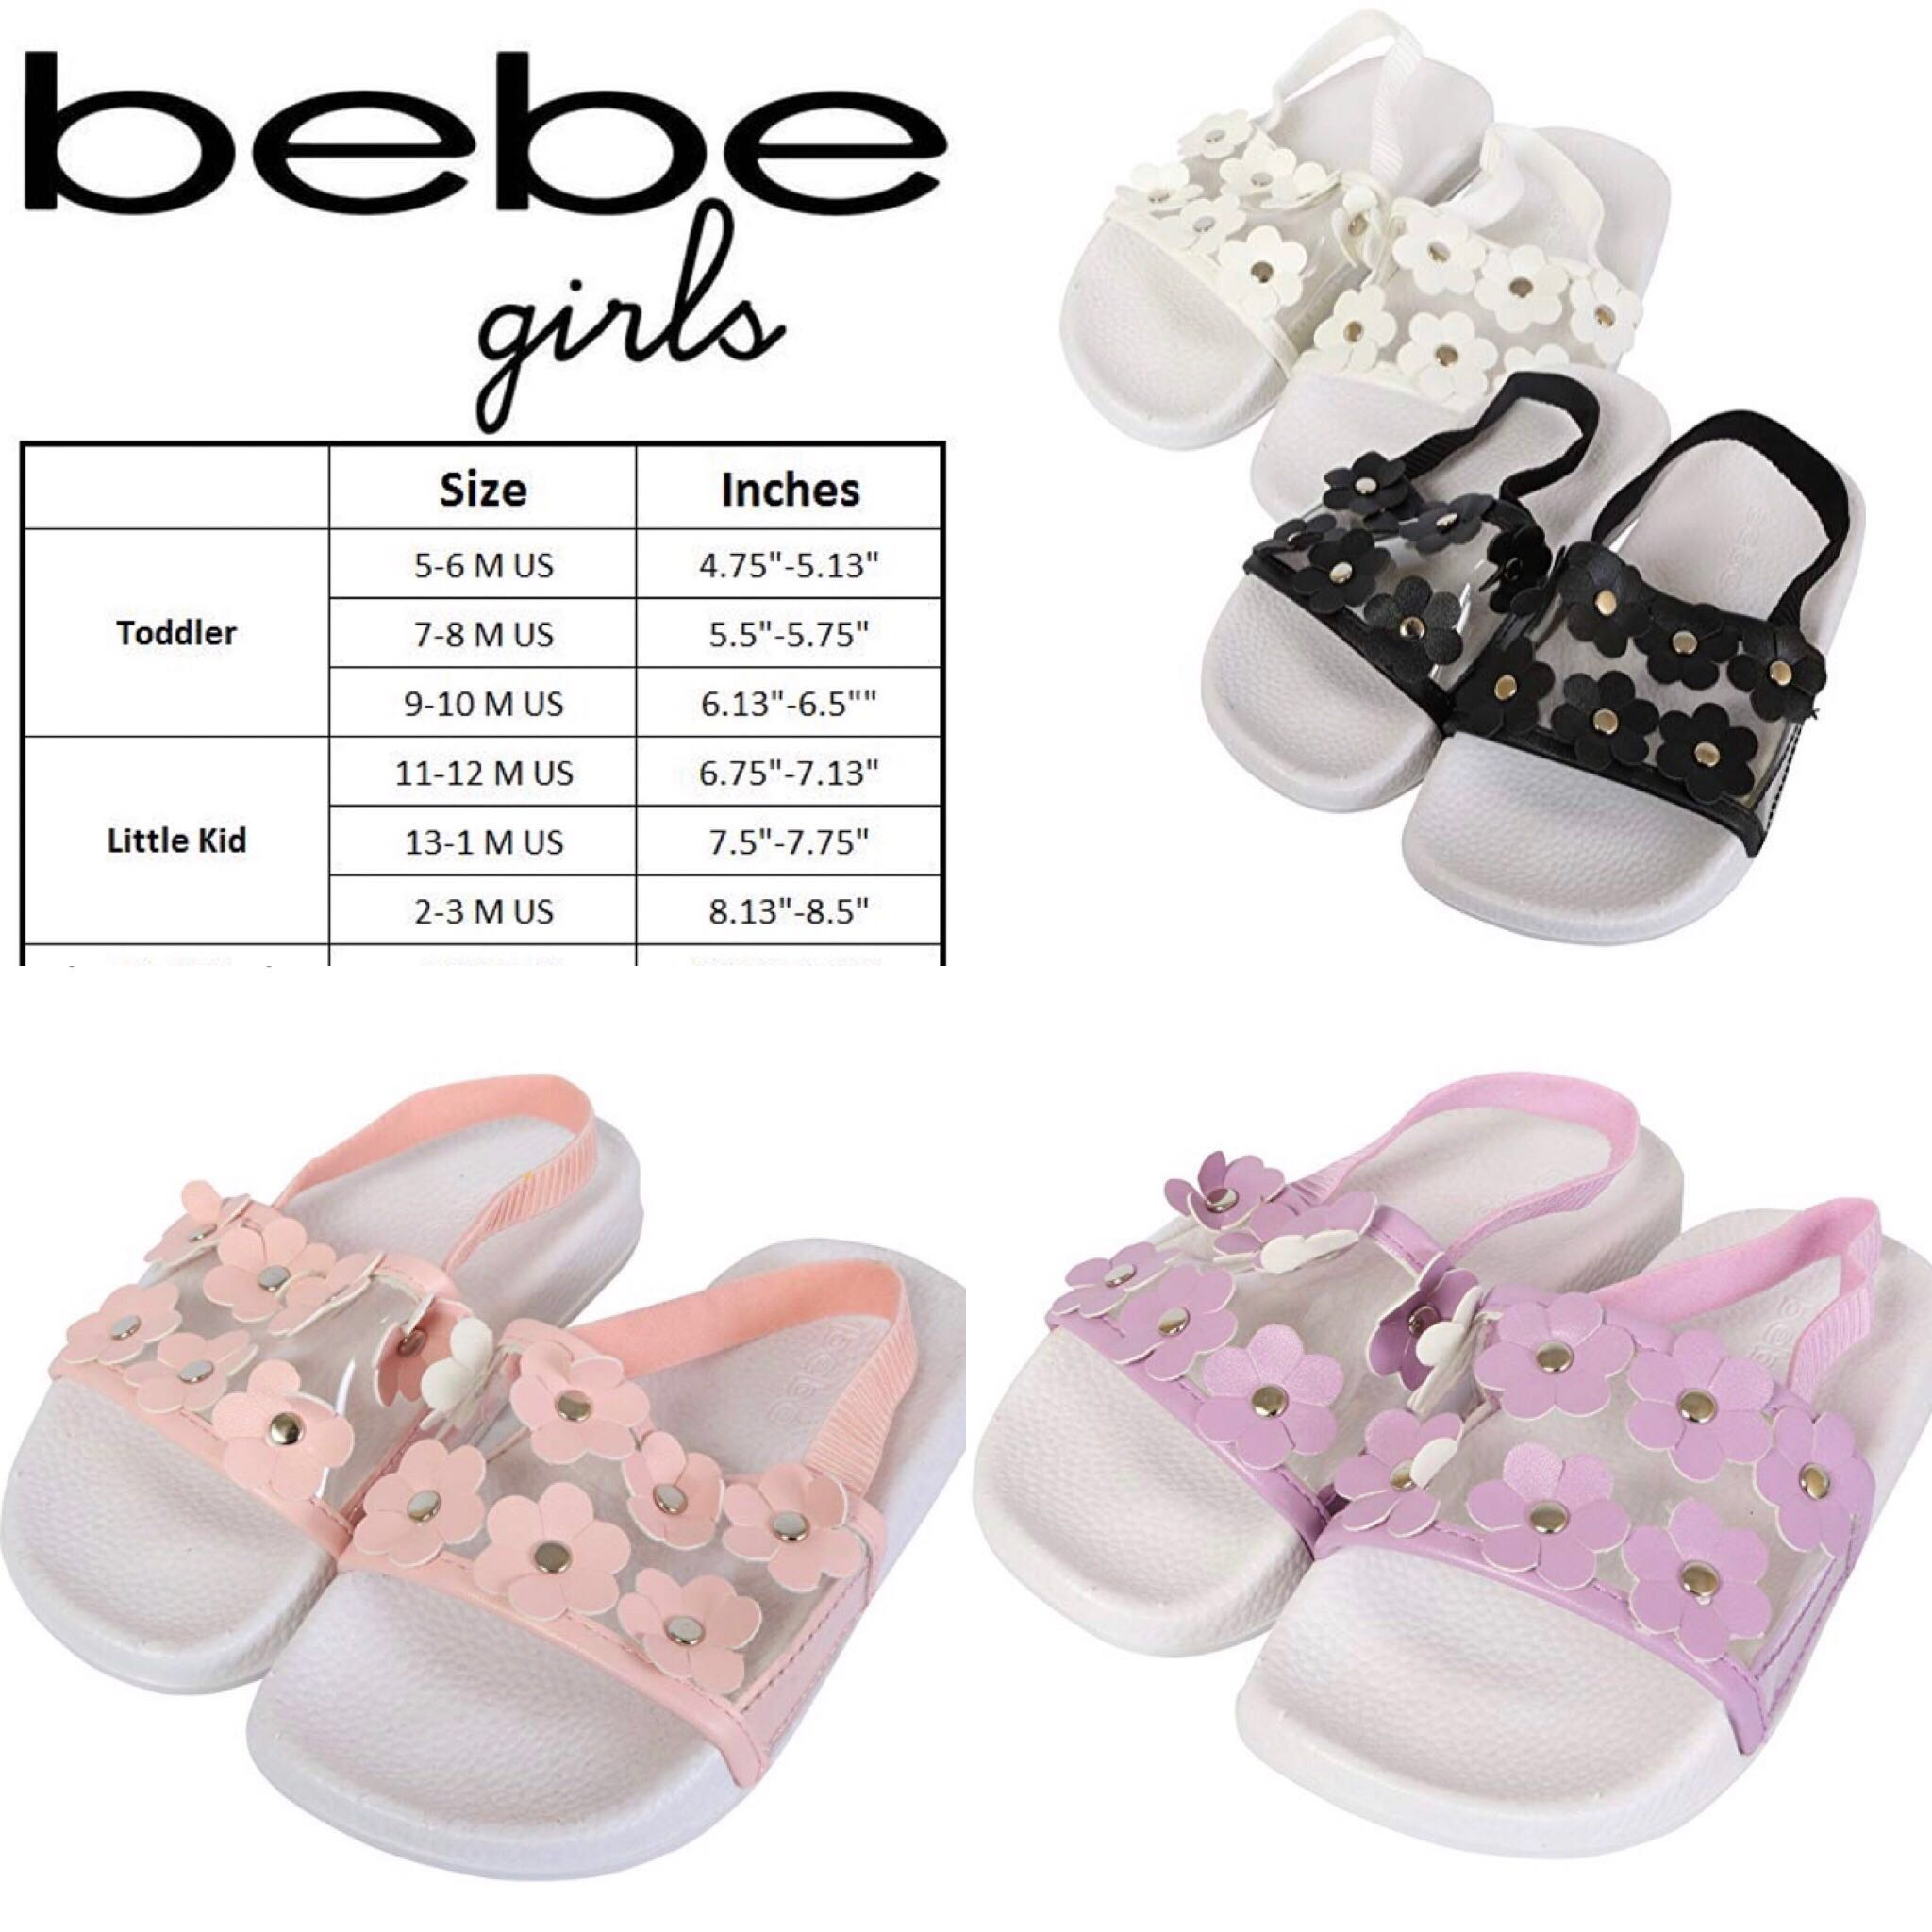 14cfadd52557 BN Bebe Girls Toddler Floral Lilac   Coral Sandals available! US9 10 ...